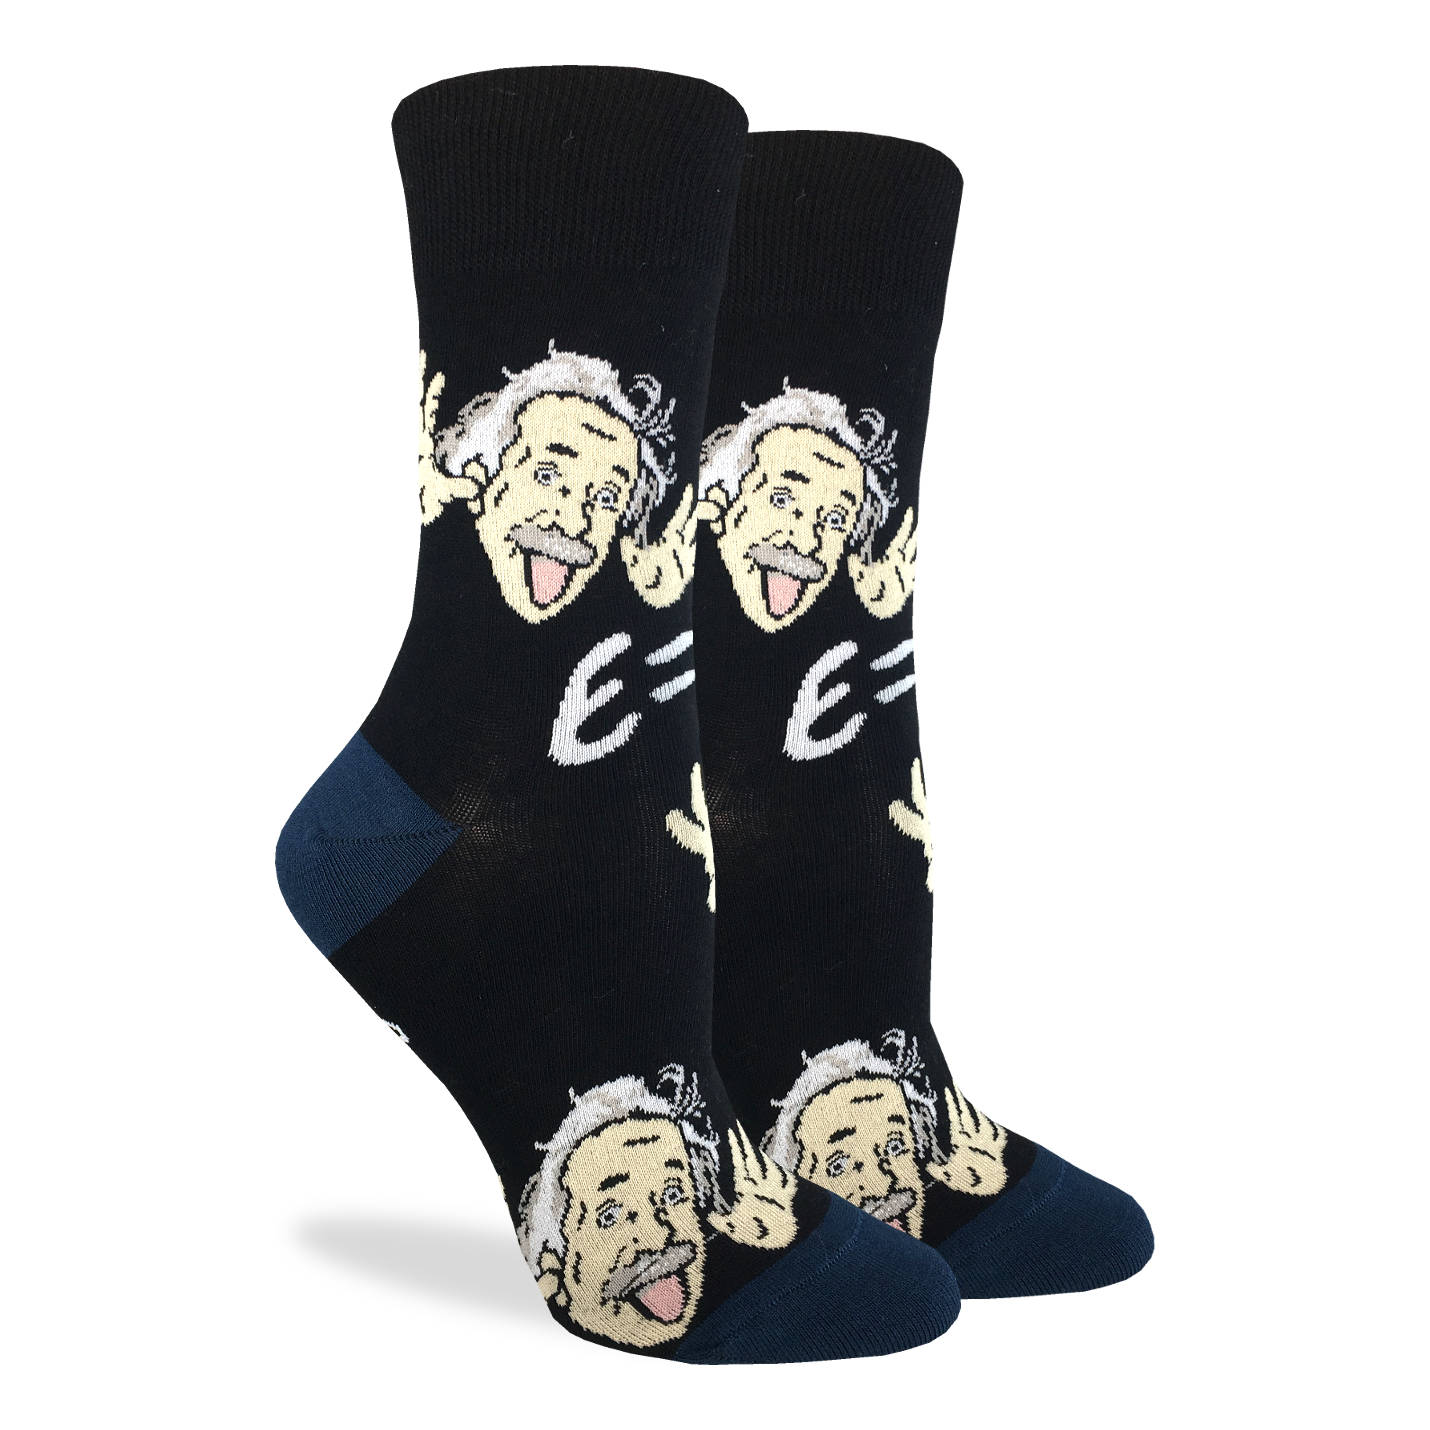 Women's Wacky Einstein Socks - Good Luck Sock